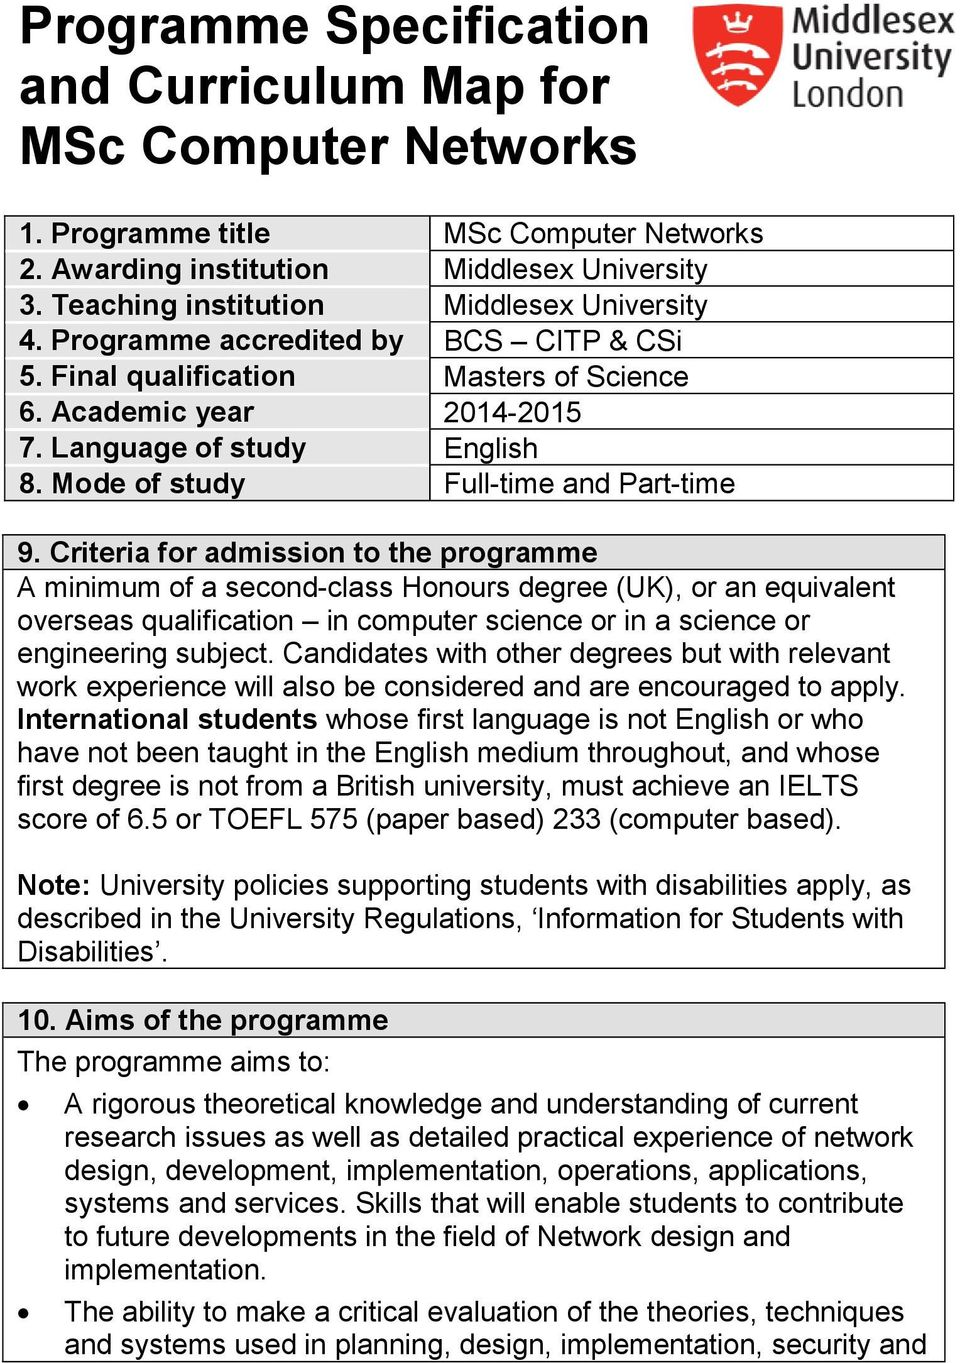 riteria for admission to the programme A minimum of a second-class Honours degree (UK), or an equivalent overseas qualification in computer science or in a science or engineering subject.